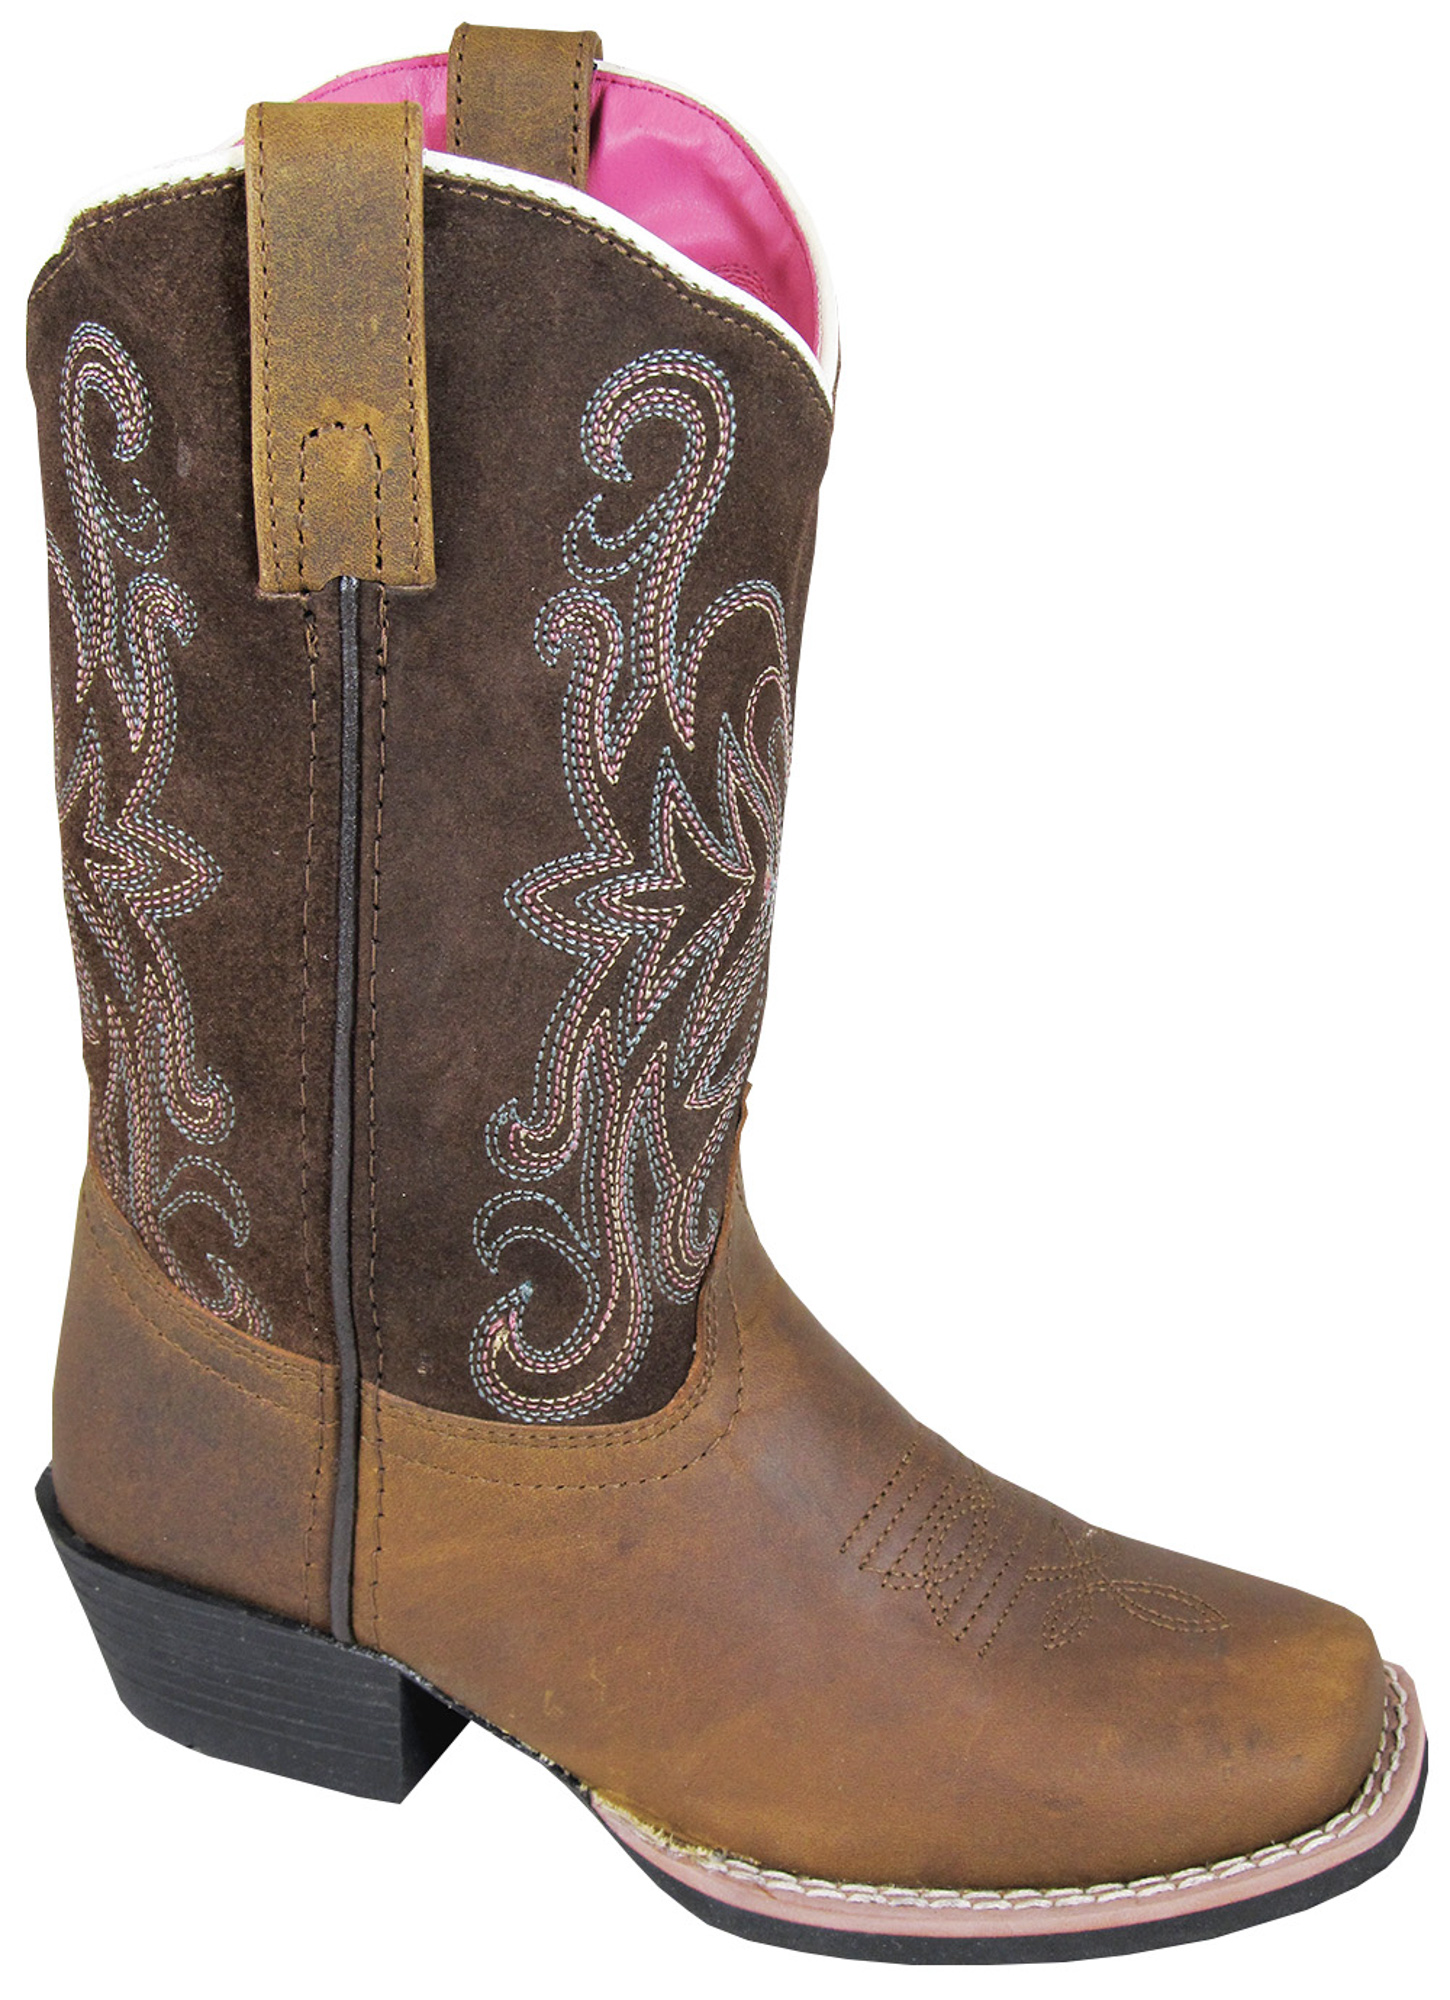 smoky mountain boots children waverly brown suede